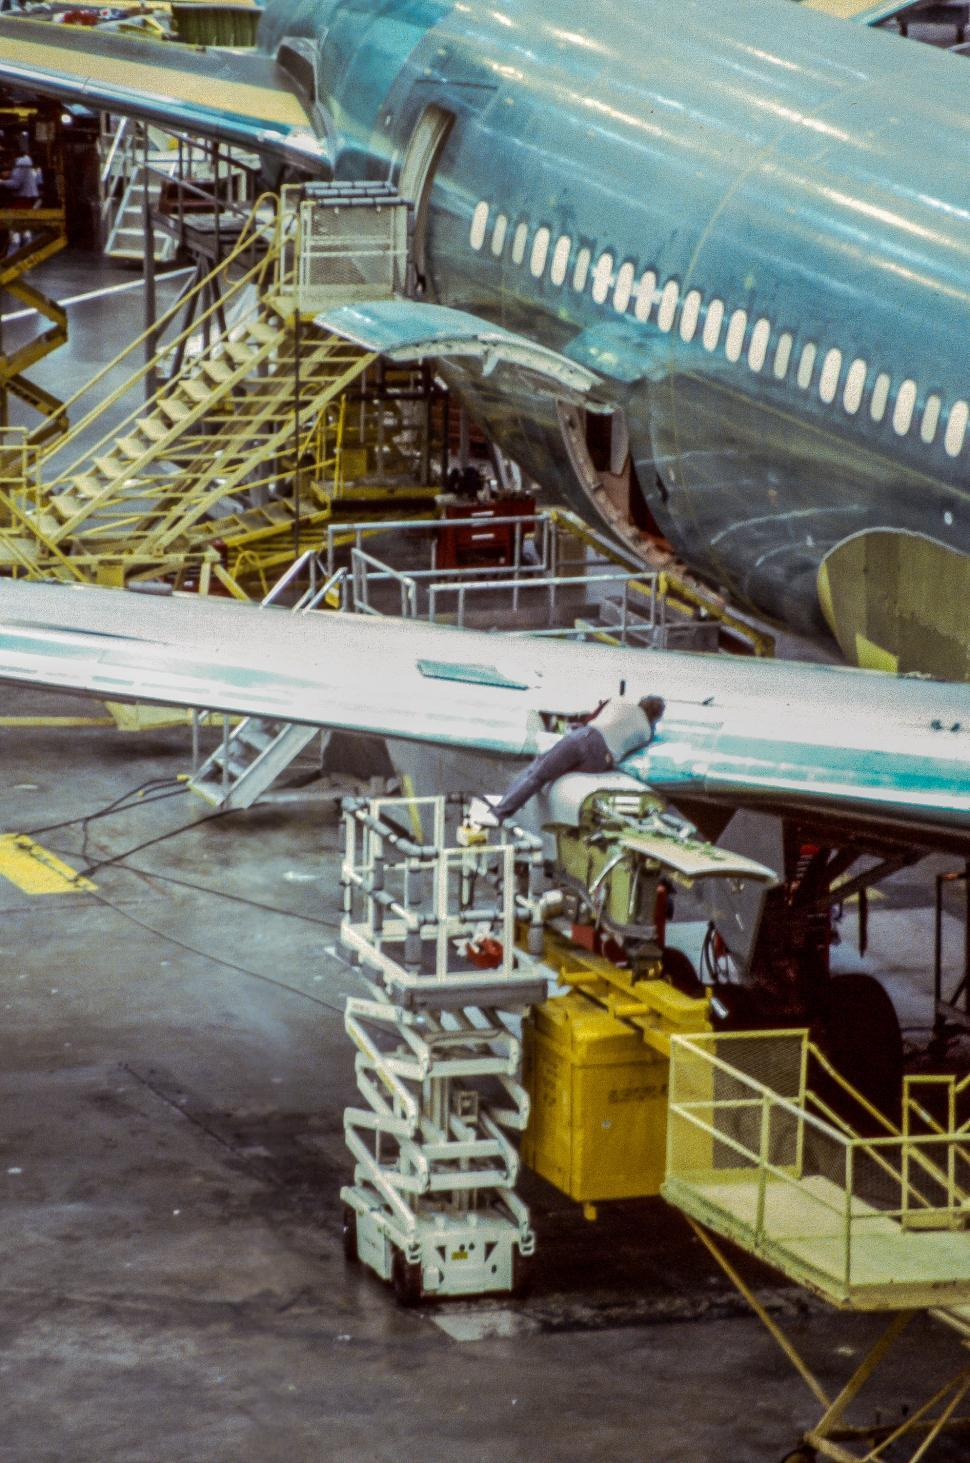 Download Free Stock HD Photo of Aircraft Manufacturing Facility Online